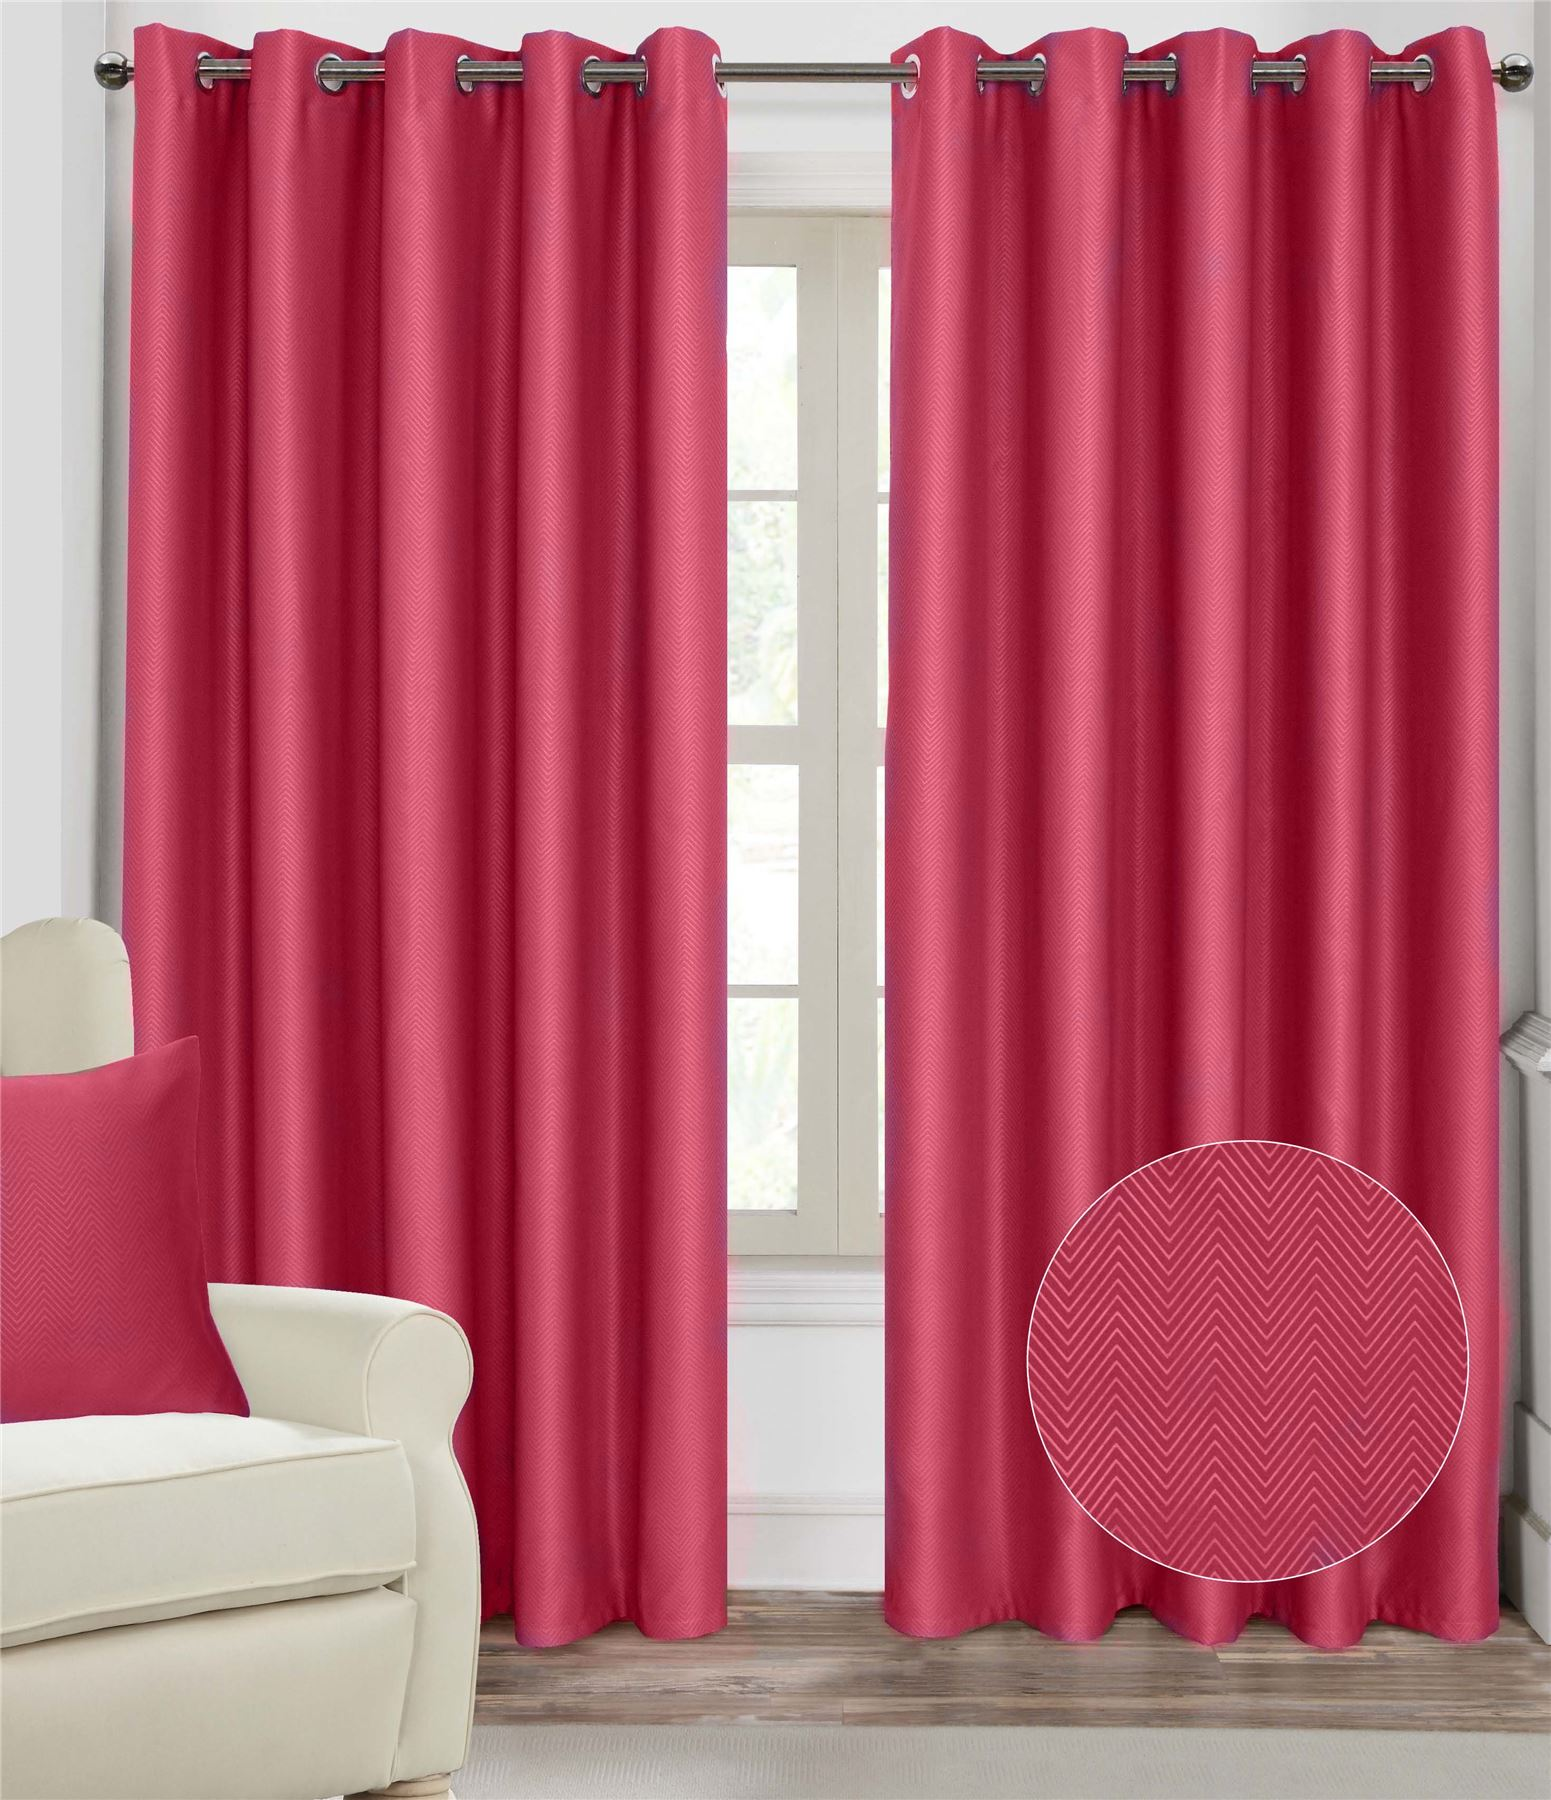 readymade made studio velvet eyelet g image lined pencil ready size stone online ukyine top ideas full curtains stirring of houston in naples ring curtain pleat nigeriaready